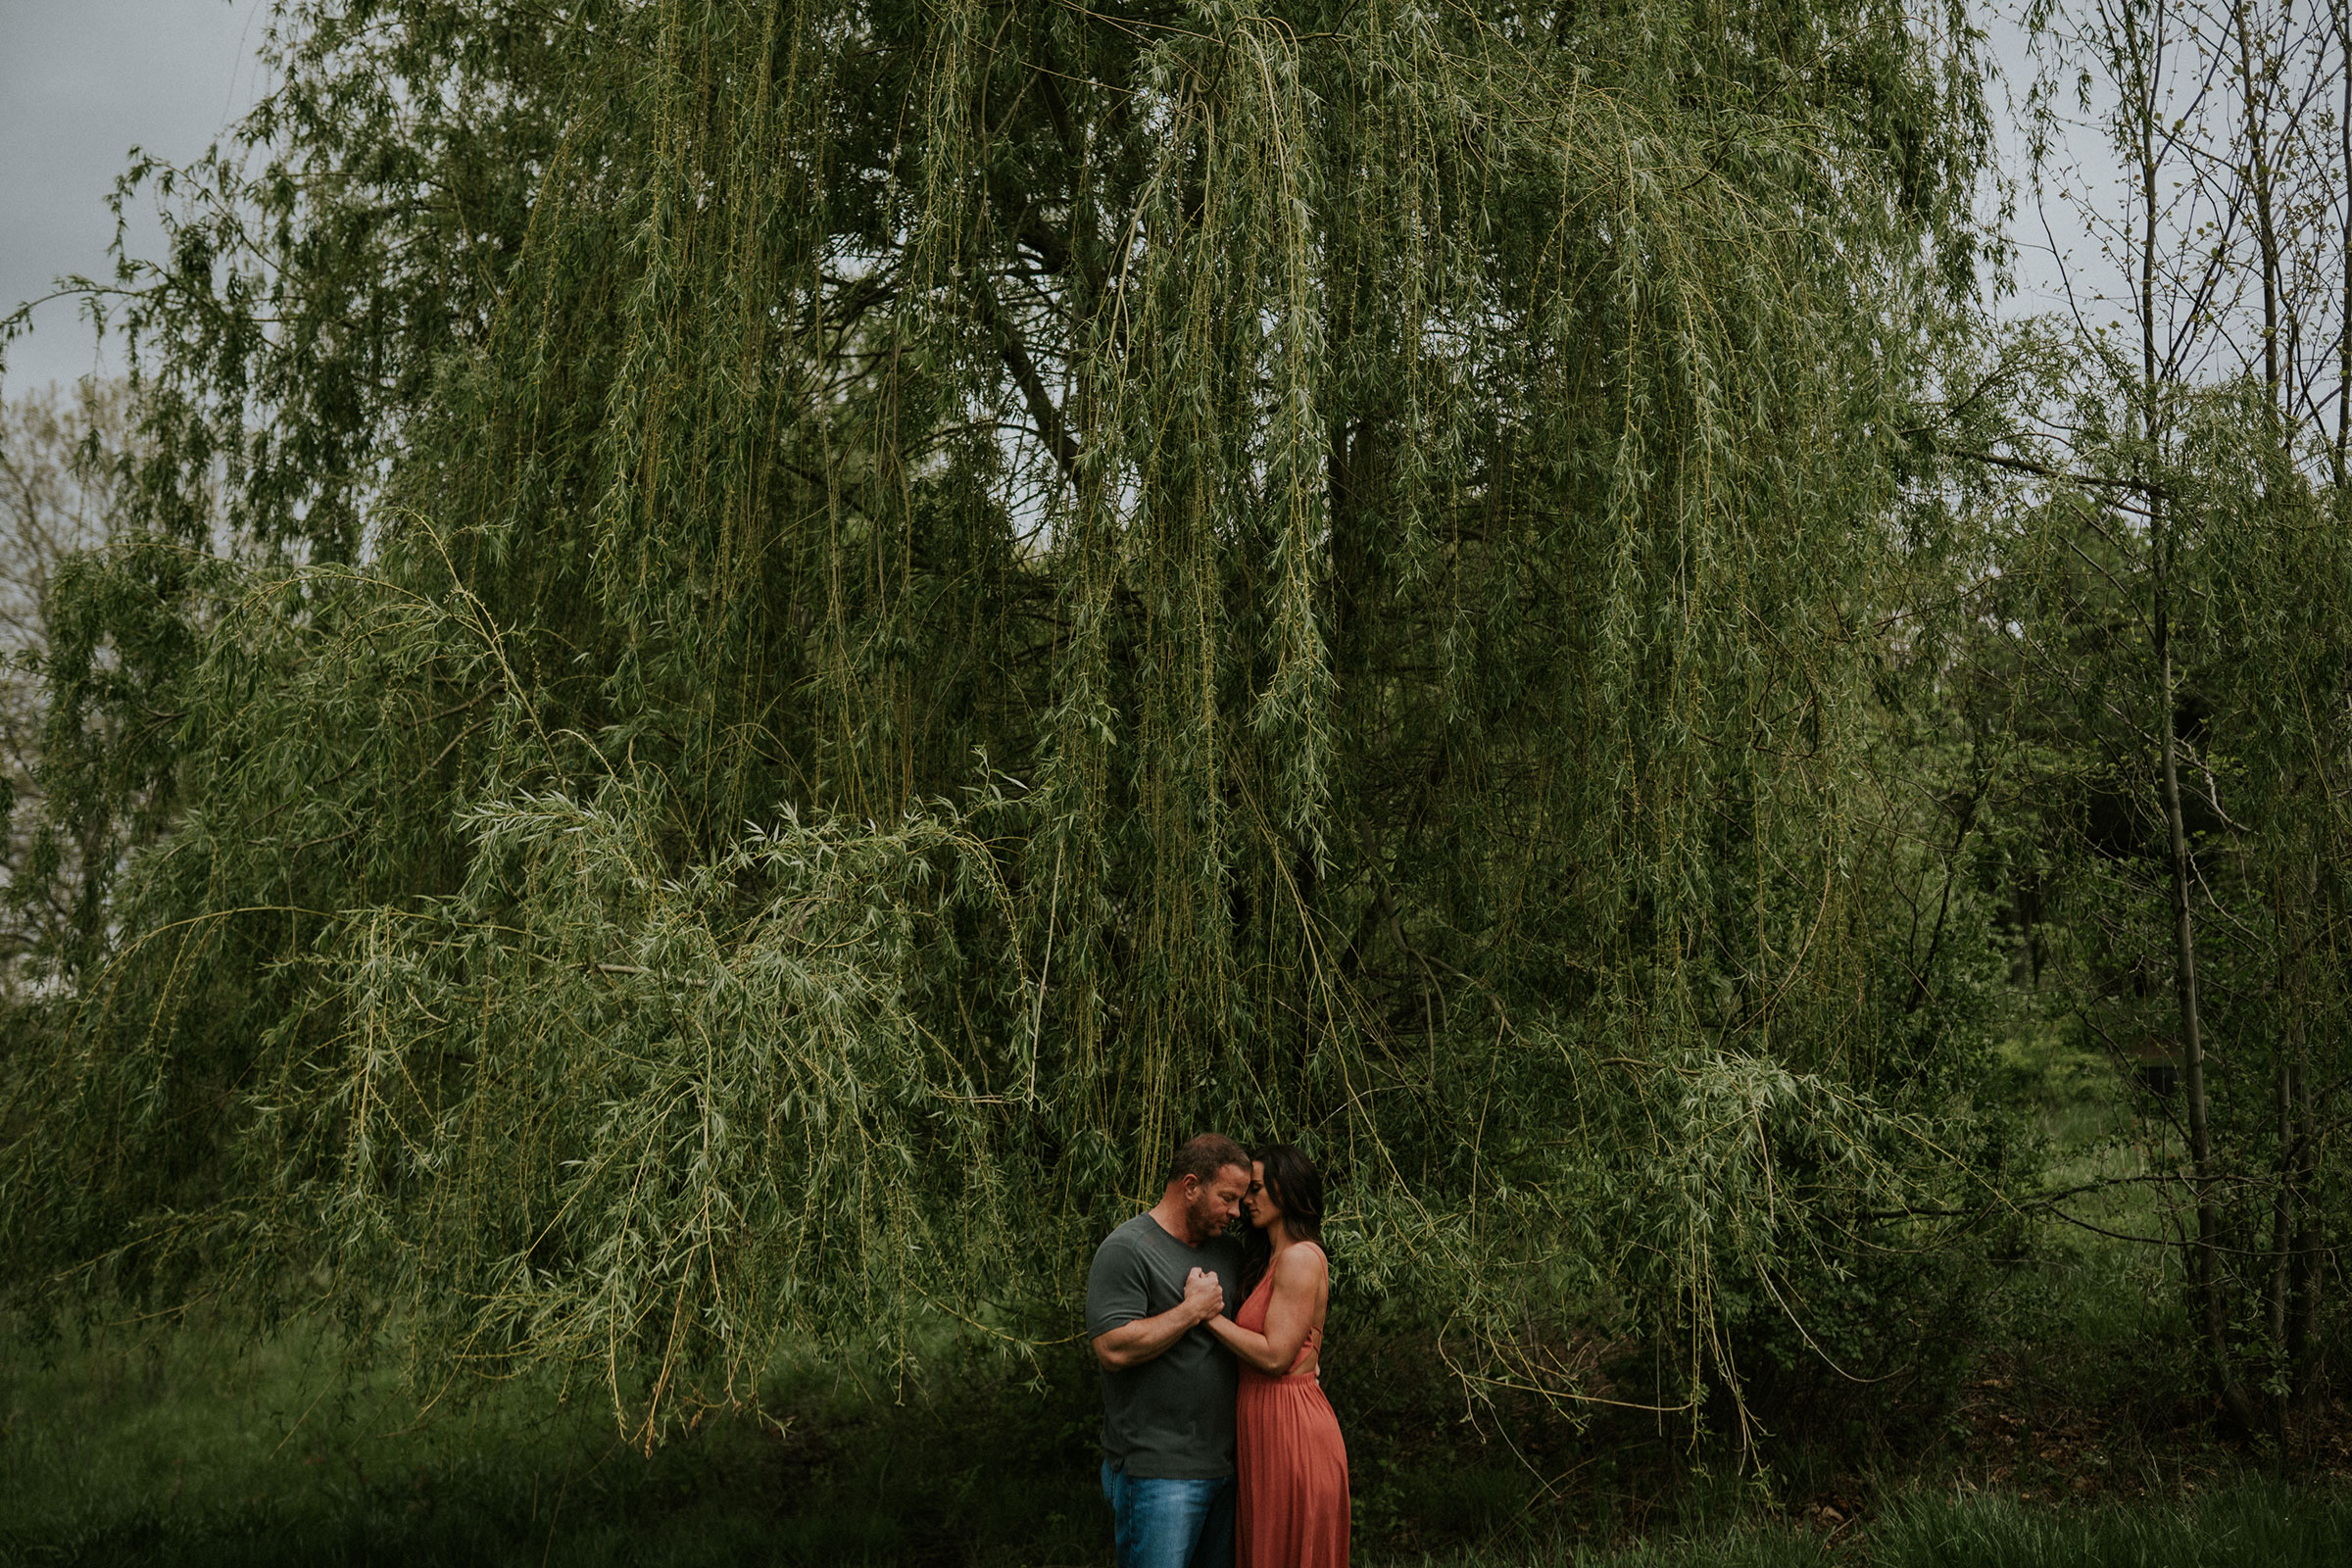 couple-standing-in-front-of-willow-tree-engagement-desmoines-iowa-raelyn-ramey-photography.jpg